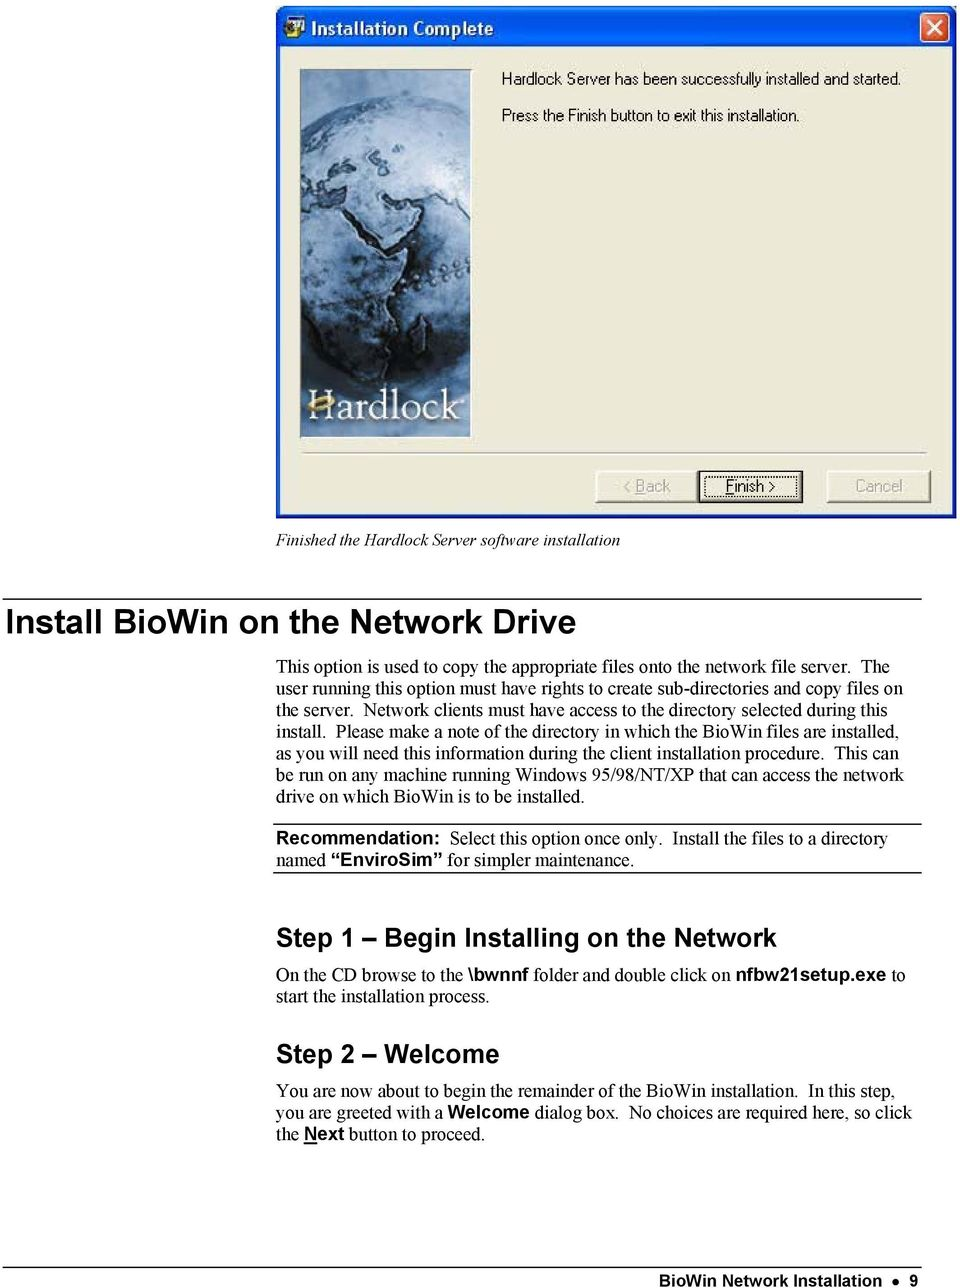 Please make a note of the directory in which the BioWin files are installed, as you will need this information during the client installation procedure.